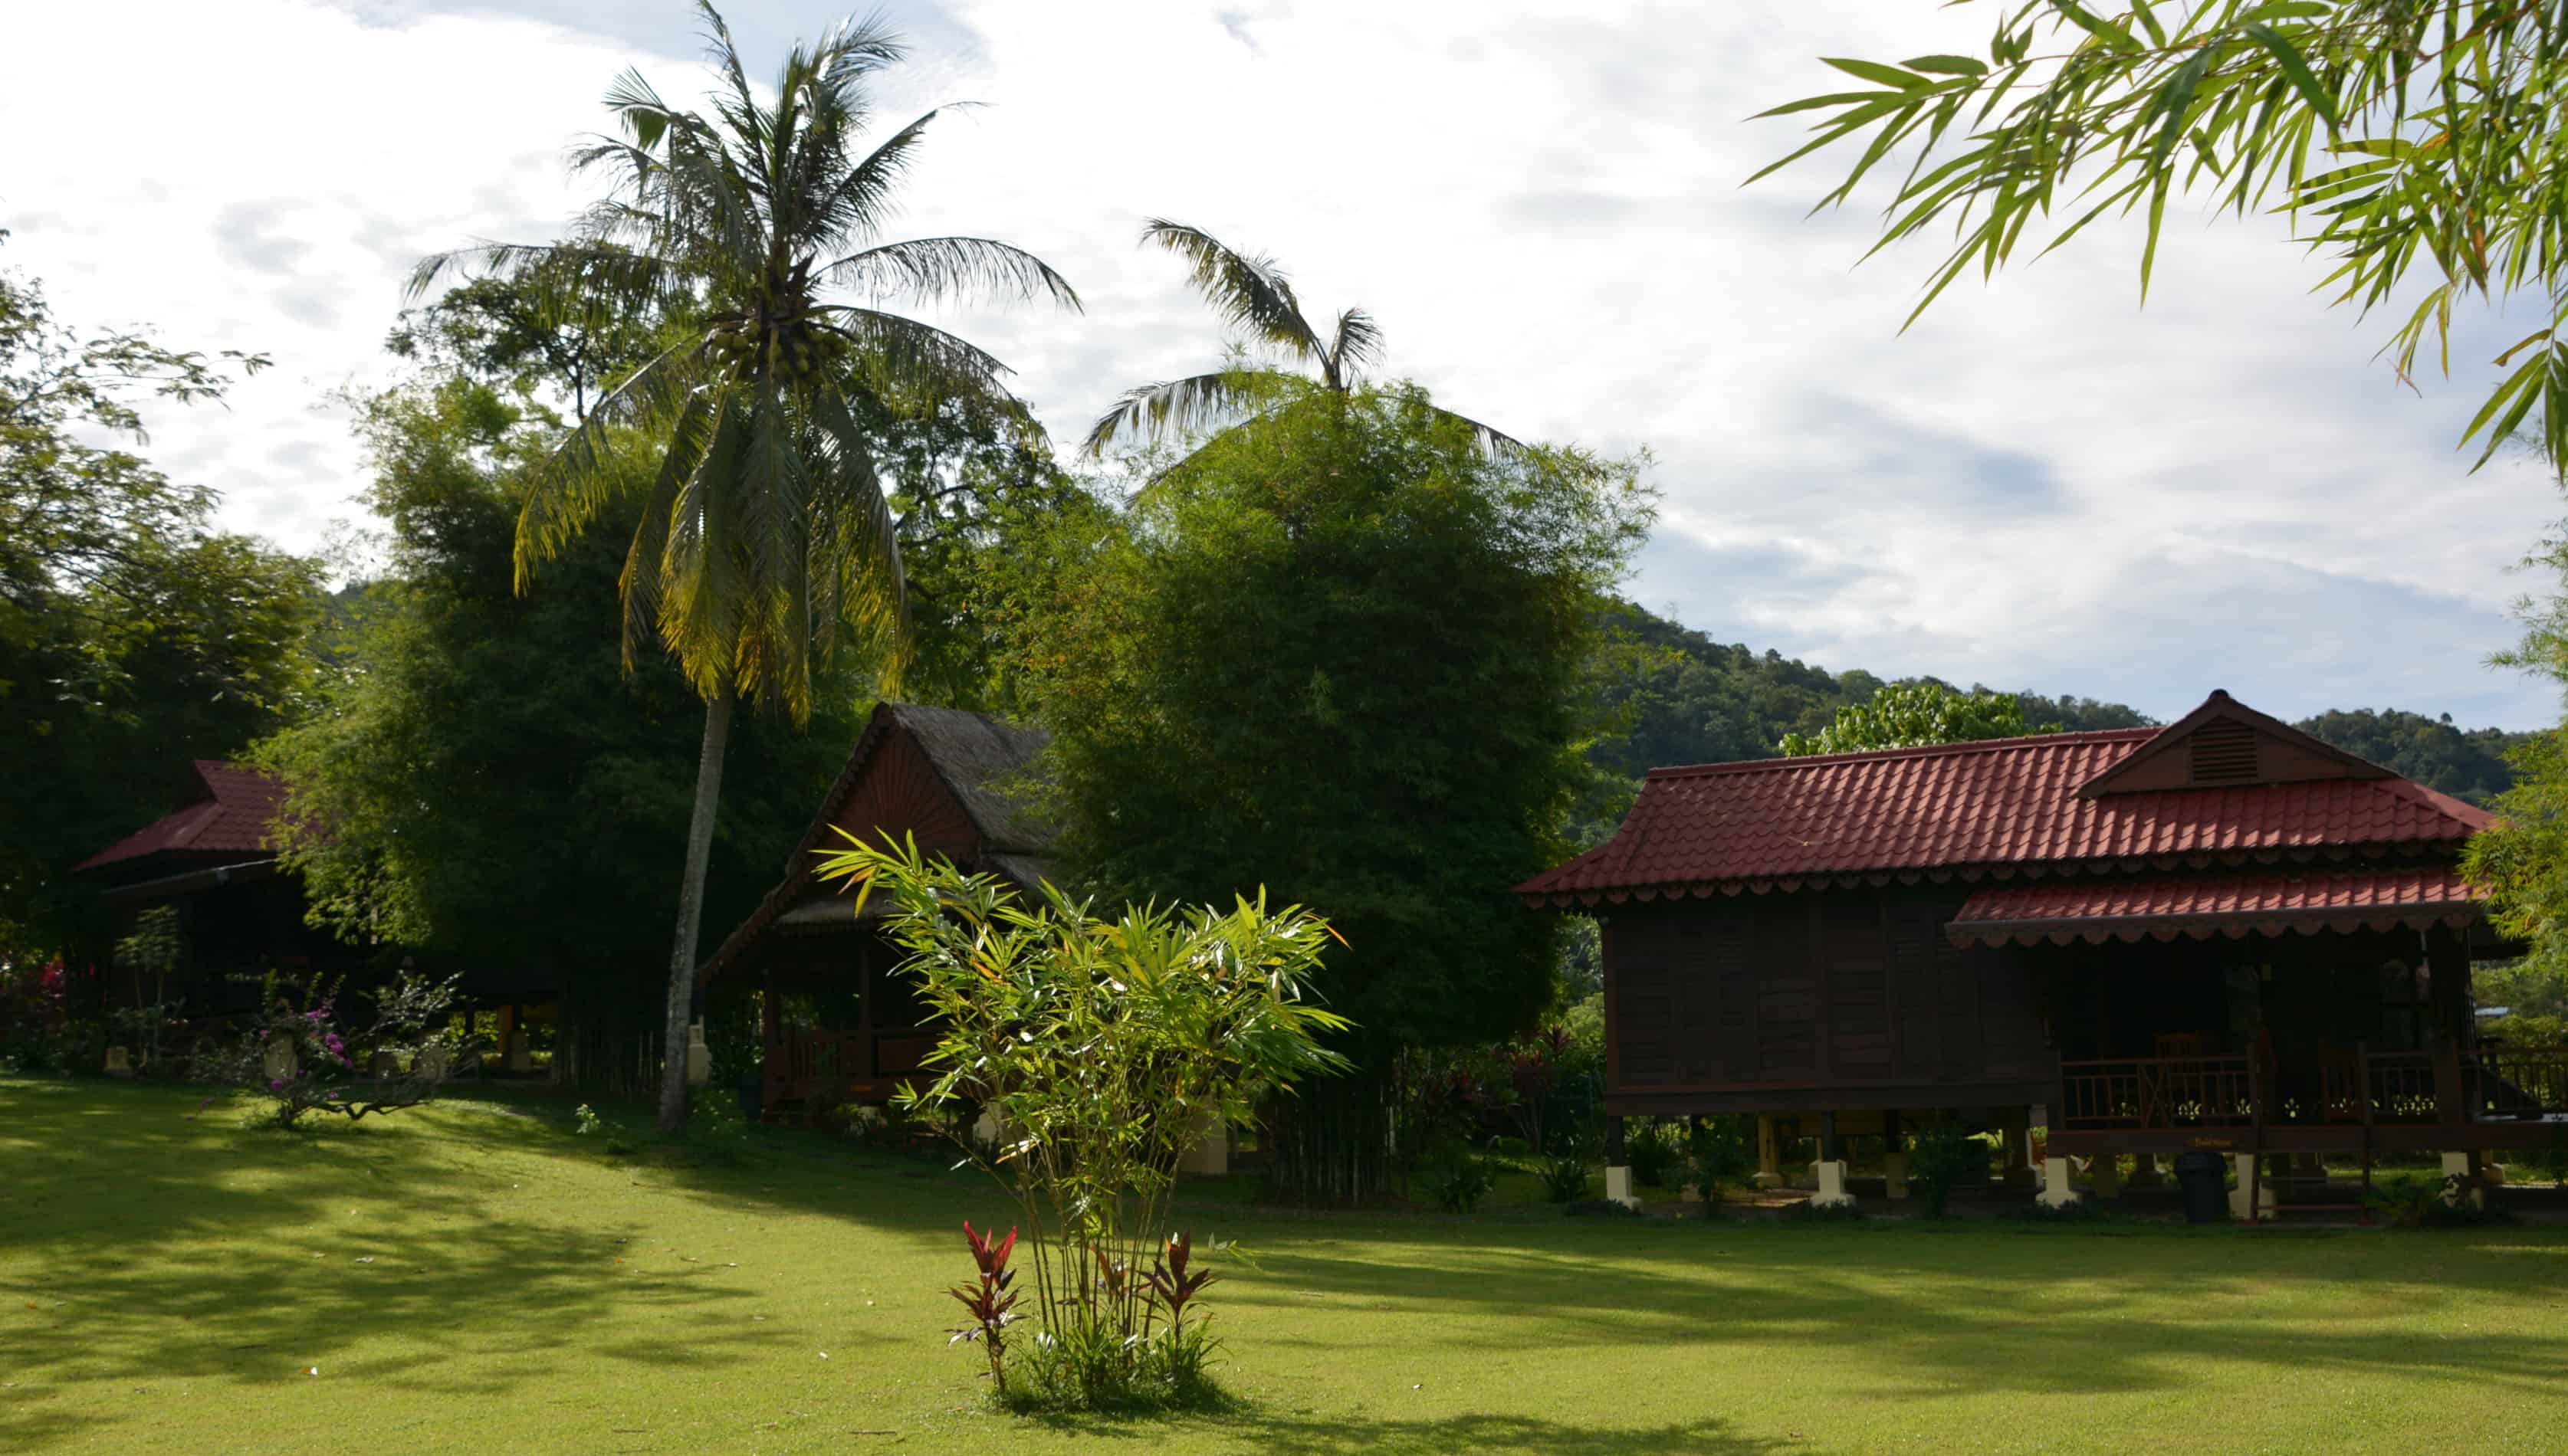 Sunset Valley Holiday Houses - Langkawi traditional villas